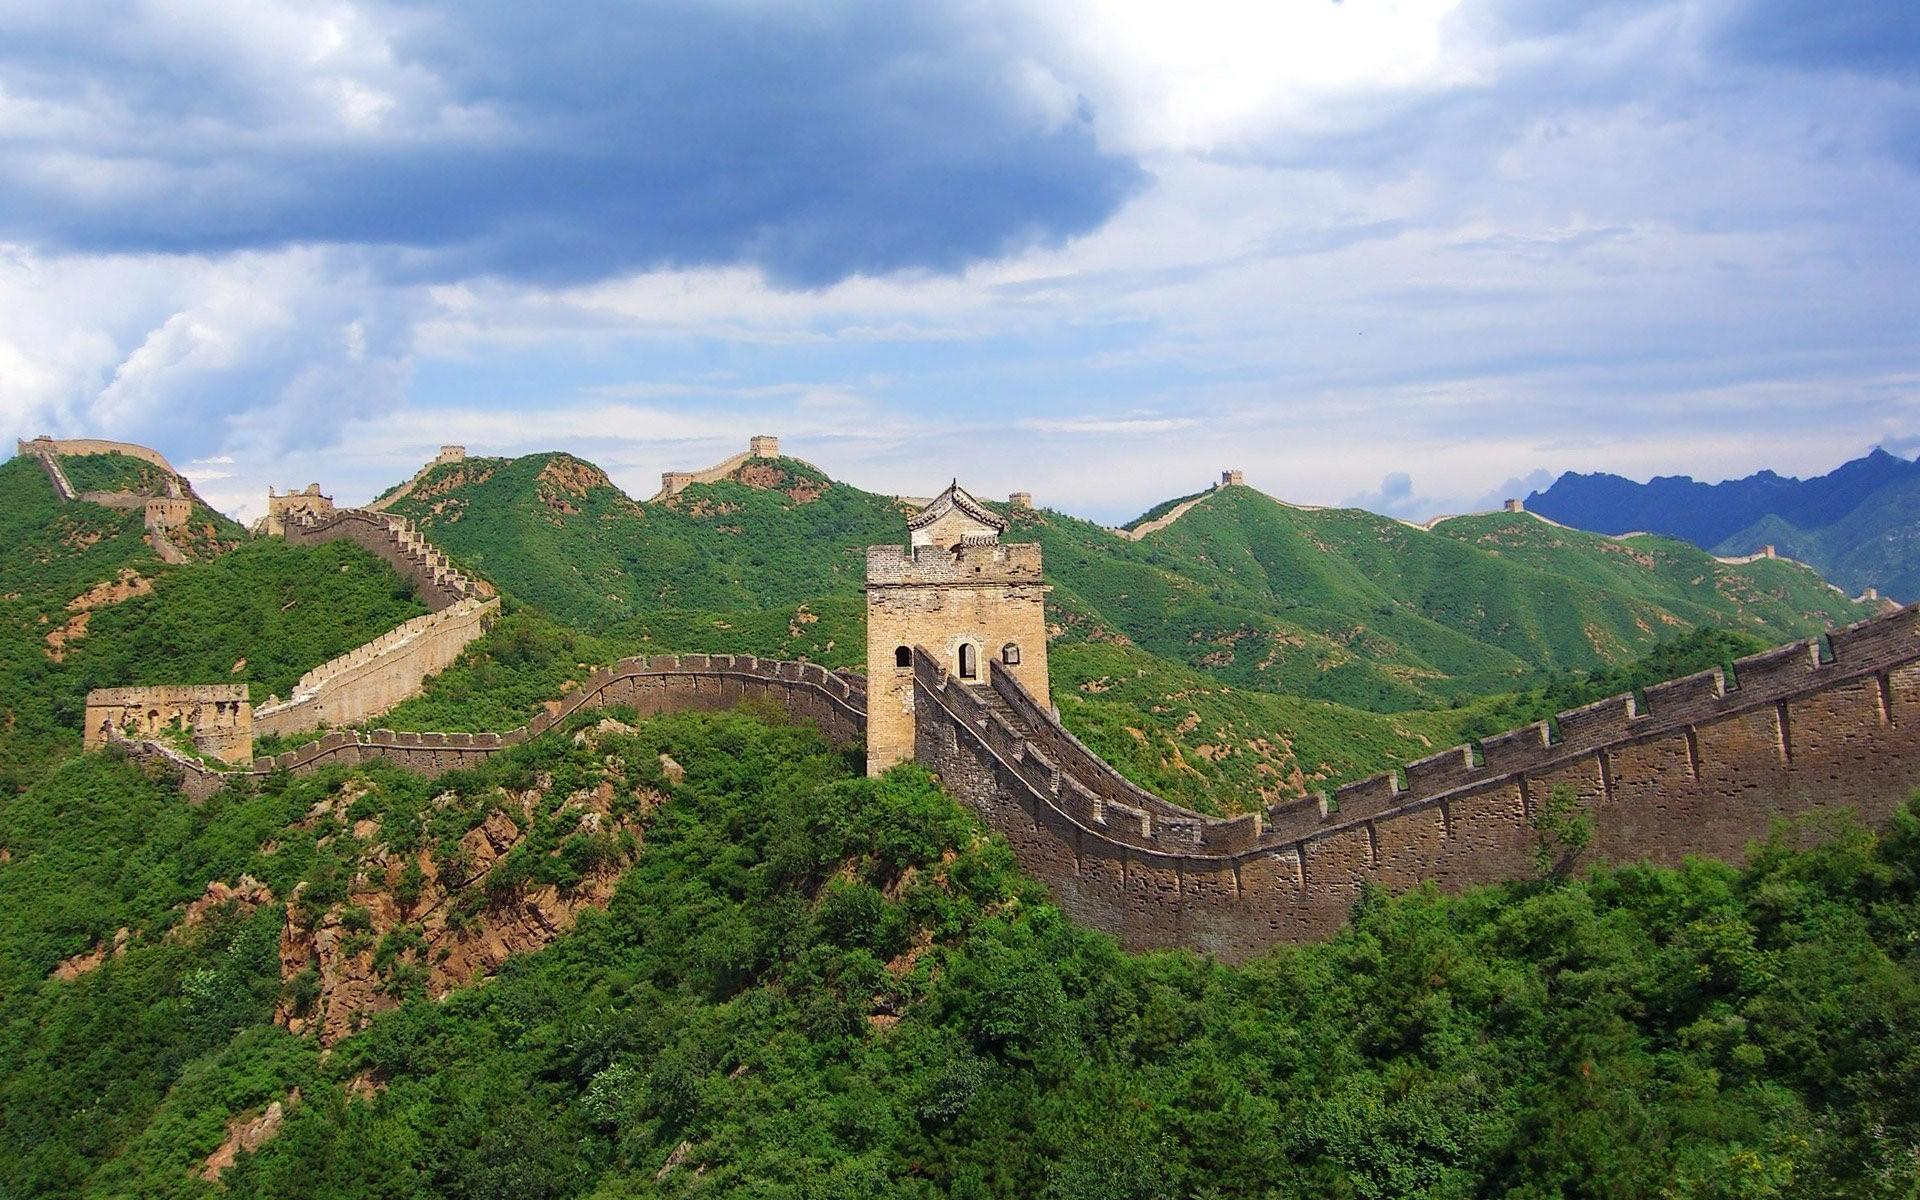 Wallpapers of The Great Wall of China